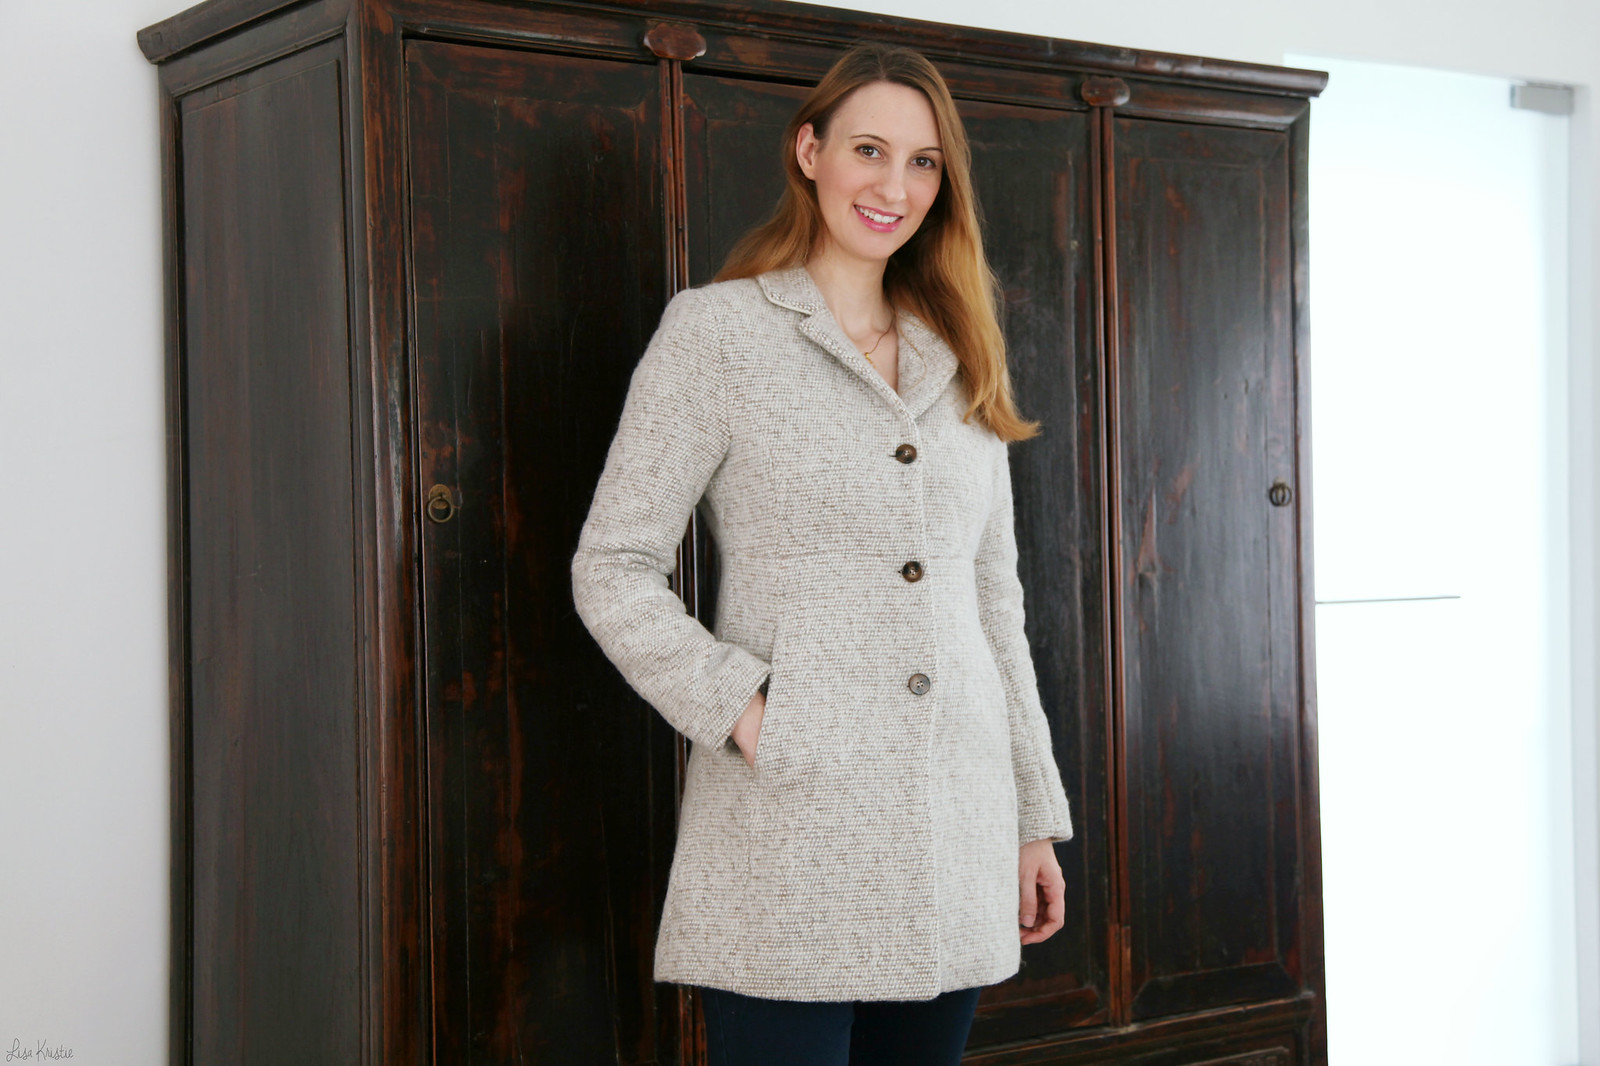 forever21 tweed collared coat in oatmeal color with 3 three brown buttons product ID 2000056466